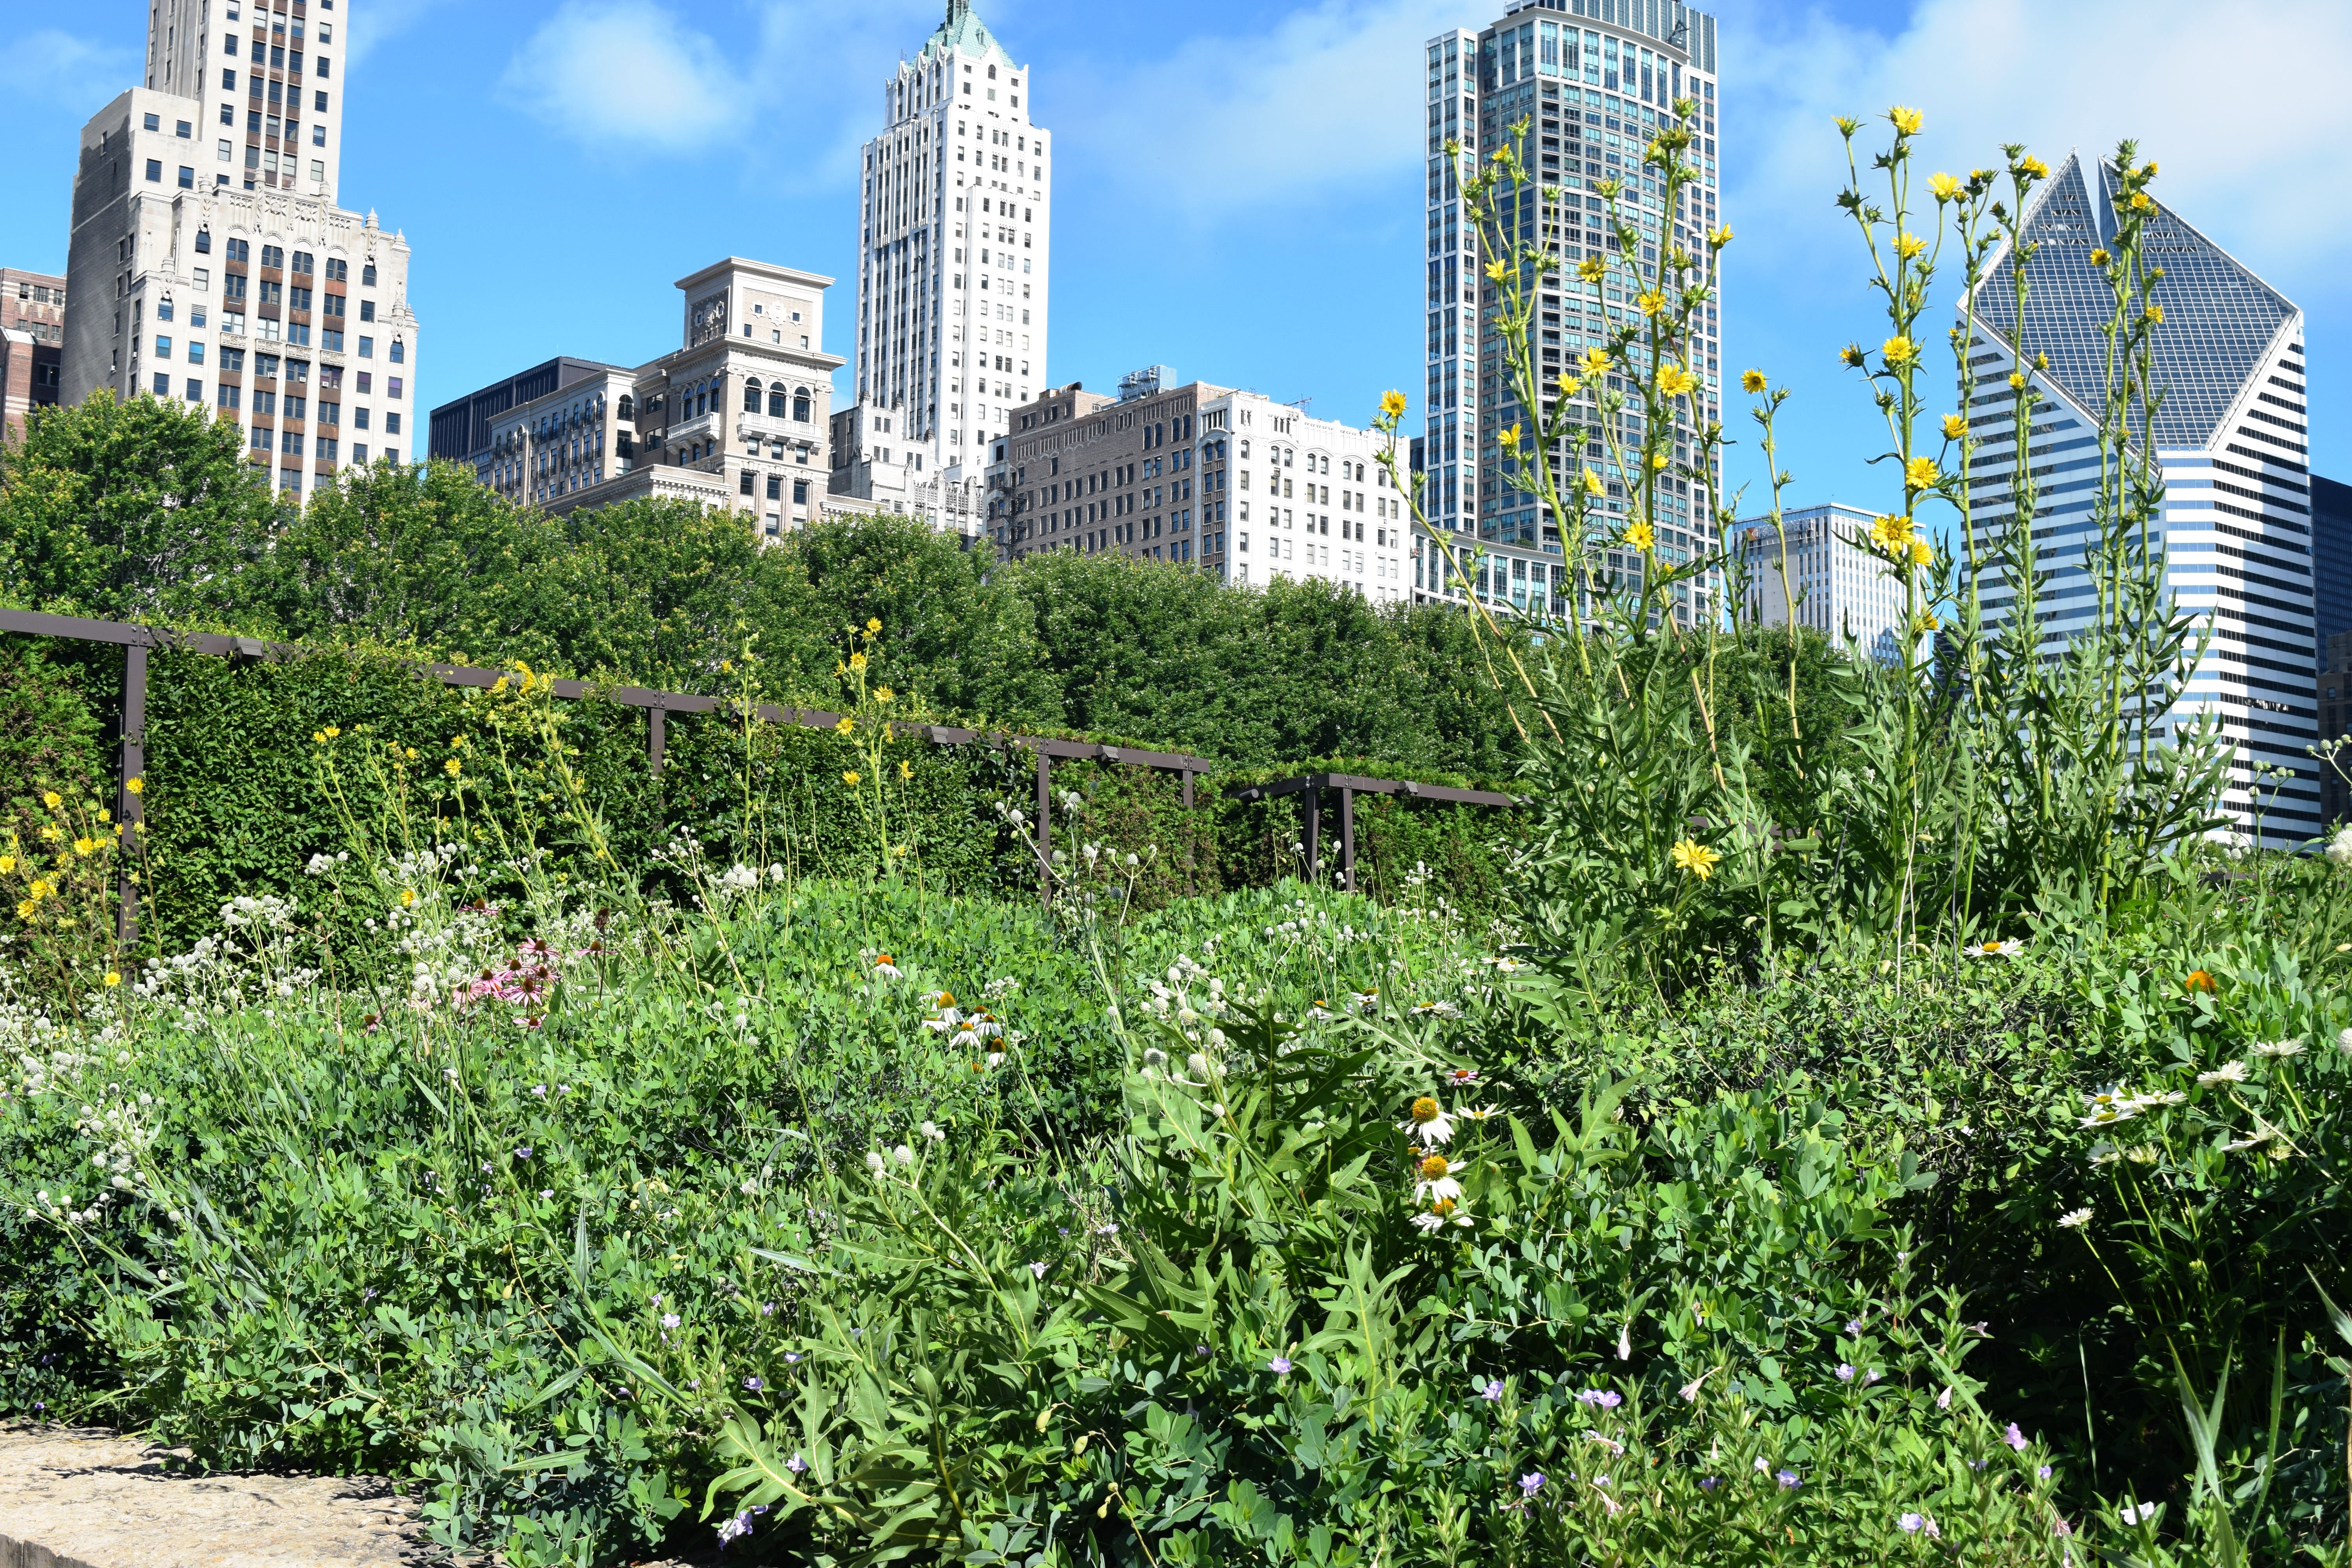 Garden Chicago: Interview With Jennifer Davit, Director Of The Lurie